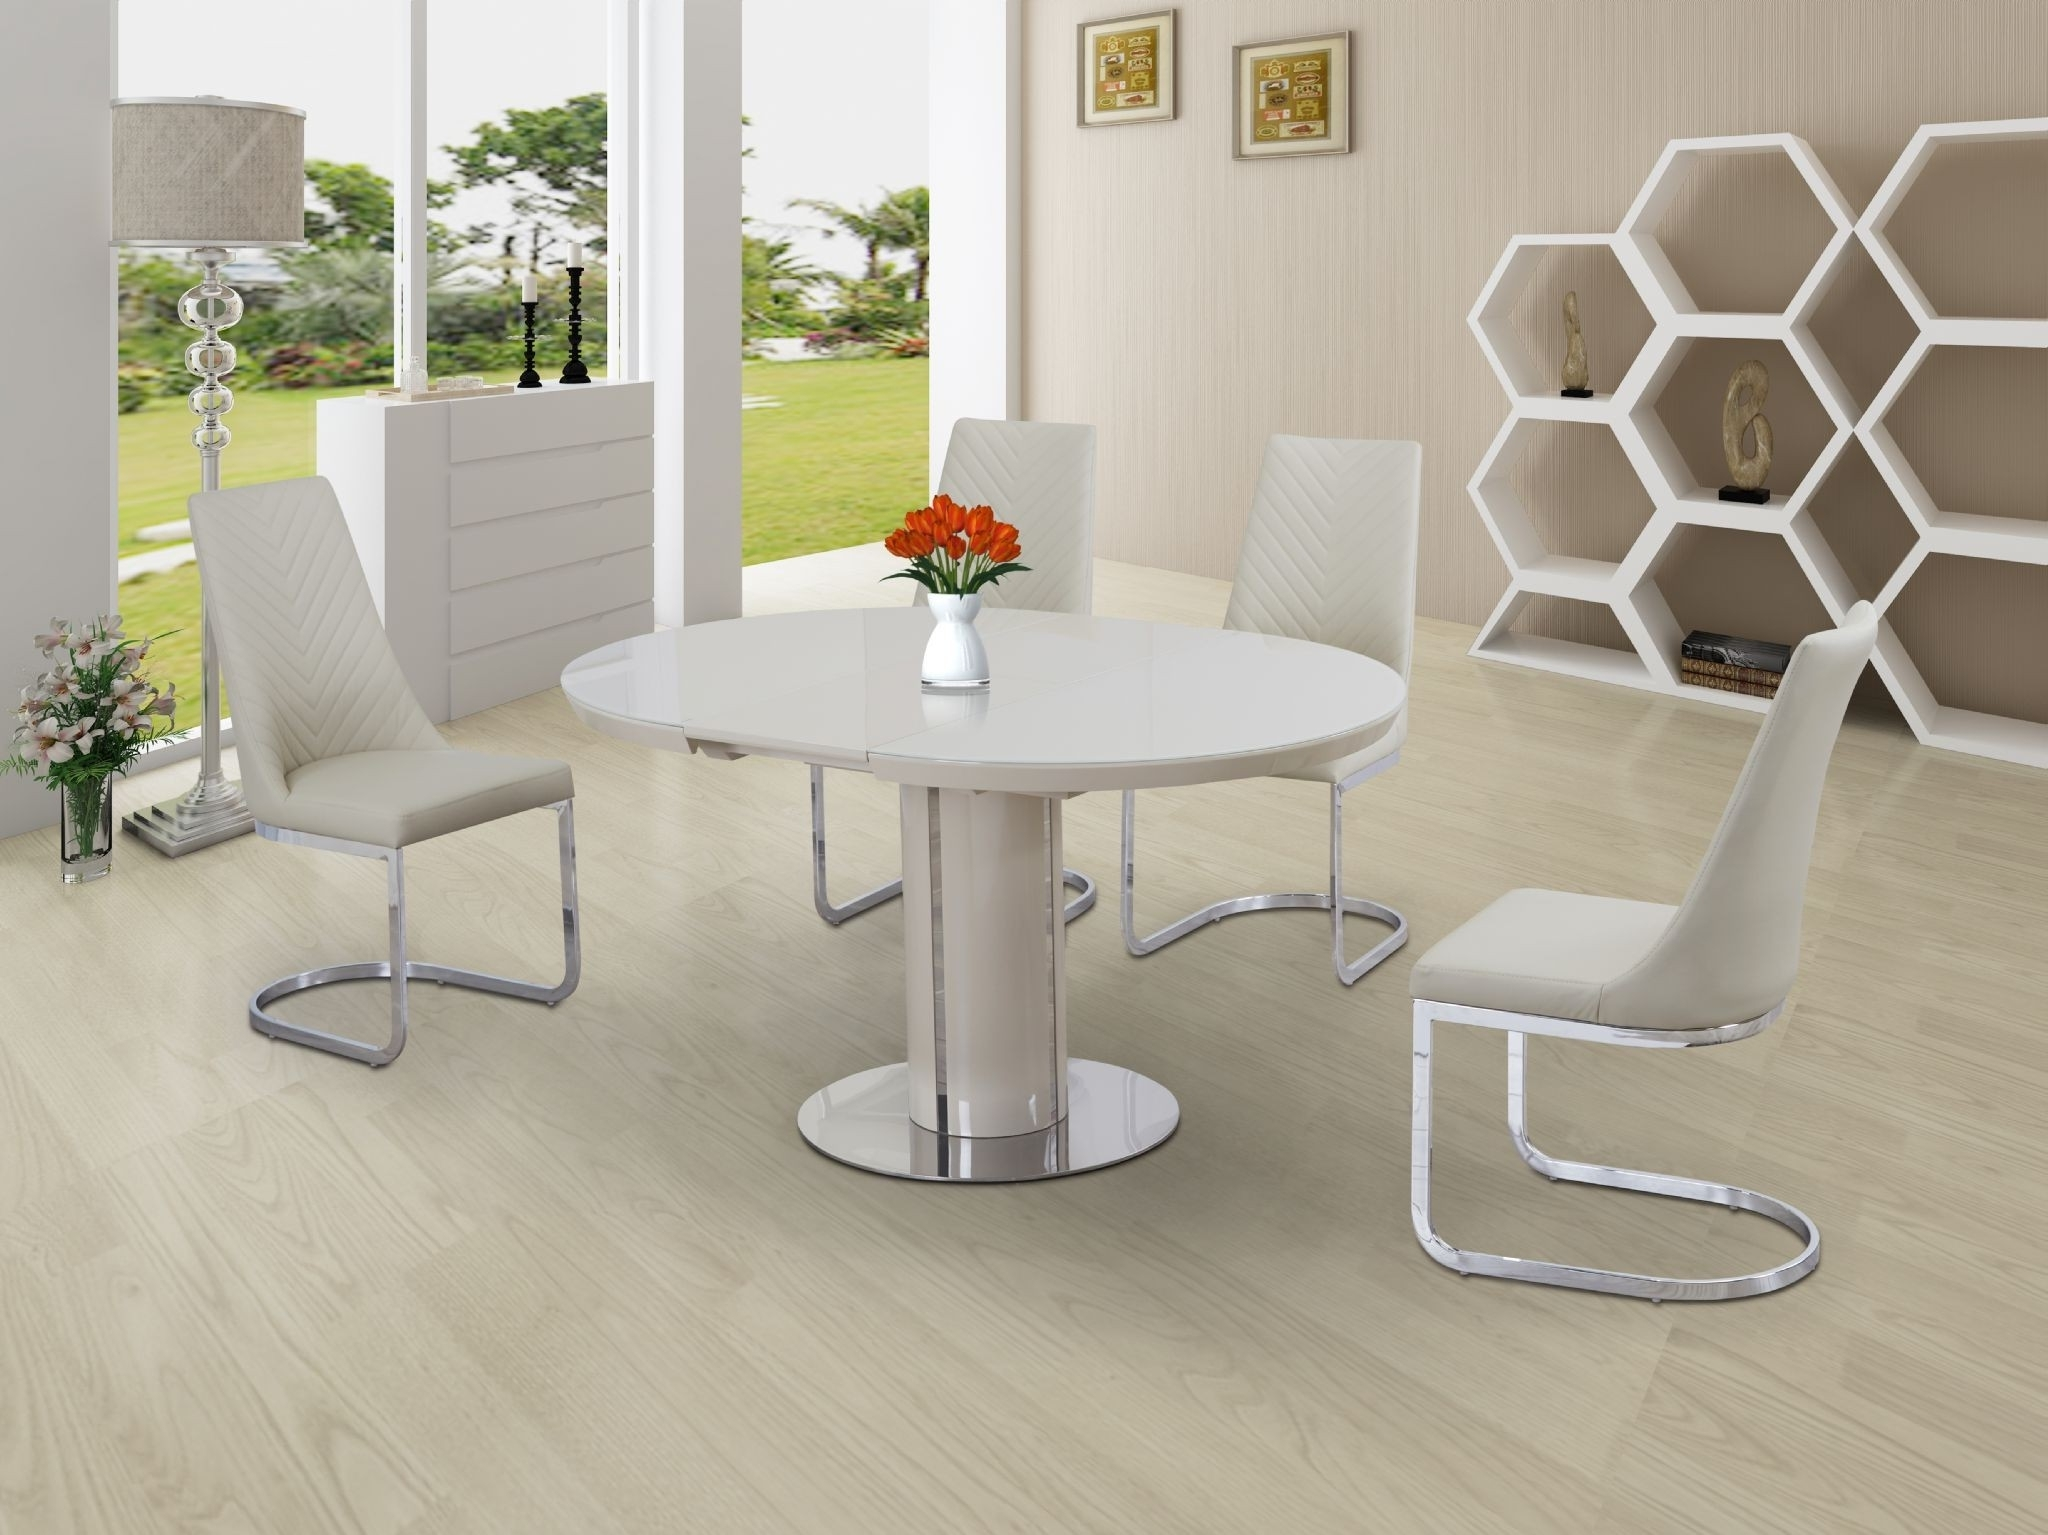 White Gloss Extendable Dining Tables Pertaining To Most Recently Released Buy Annular Cream High Gloss Extending Dining Table (View 15 of 25)